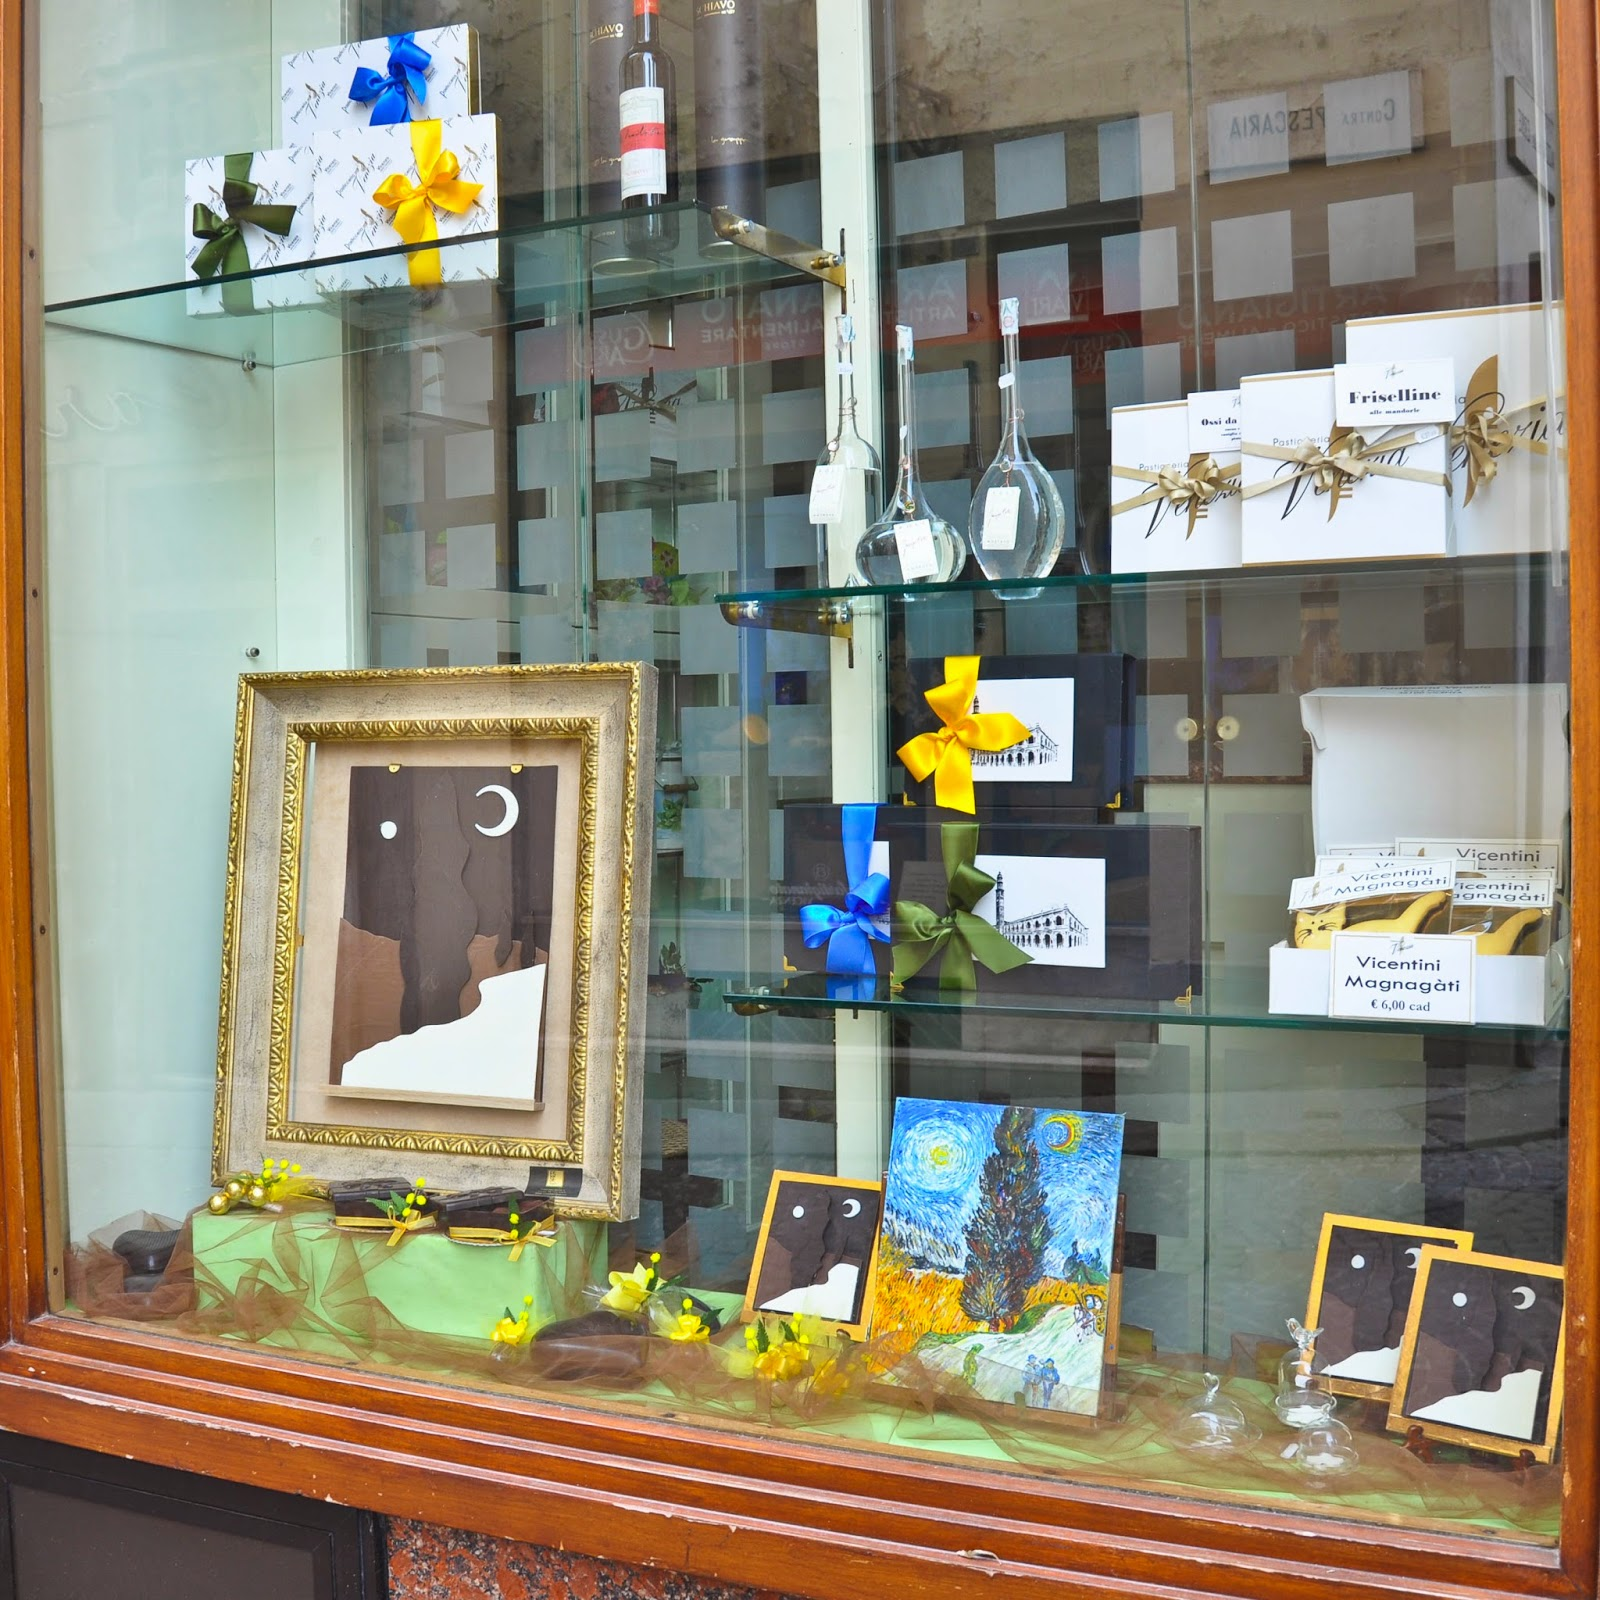 The window display of Pasticceria Venezia in Vicenza showing chocolate reproductions of a Van Gogh's painting